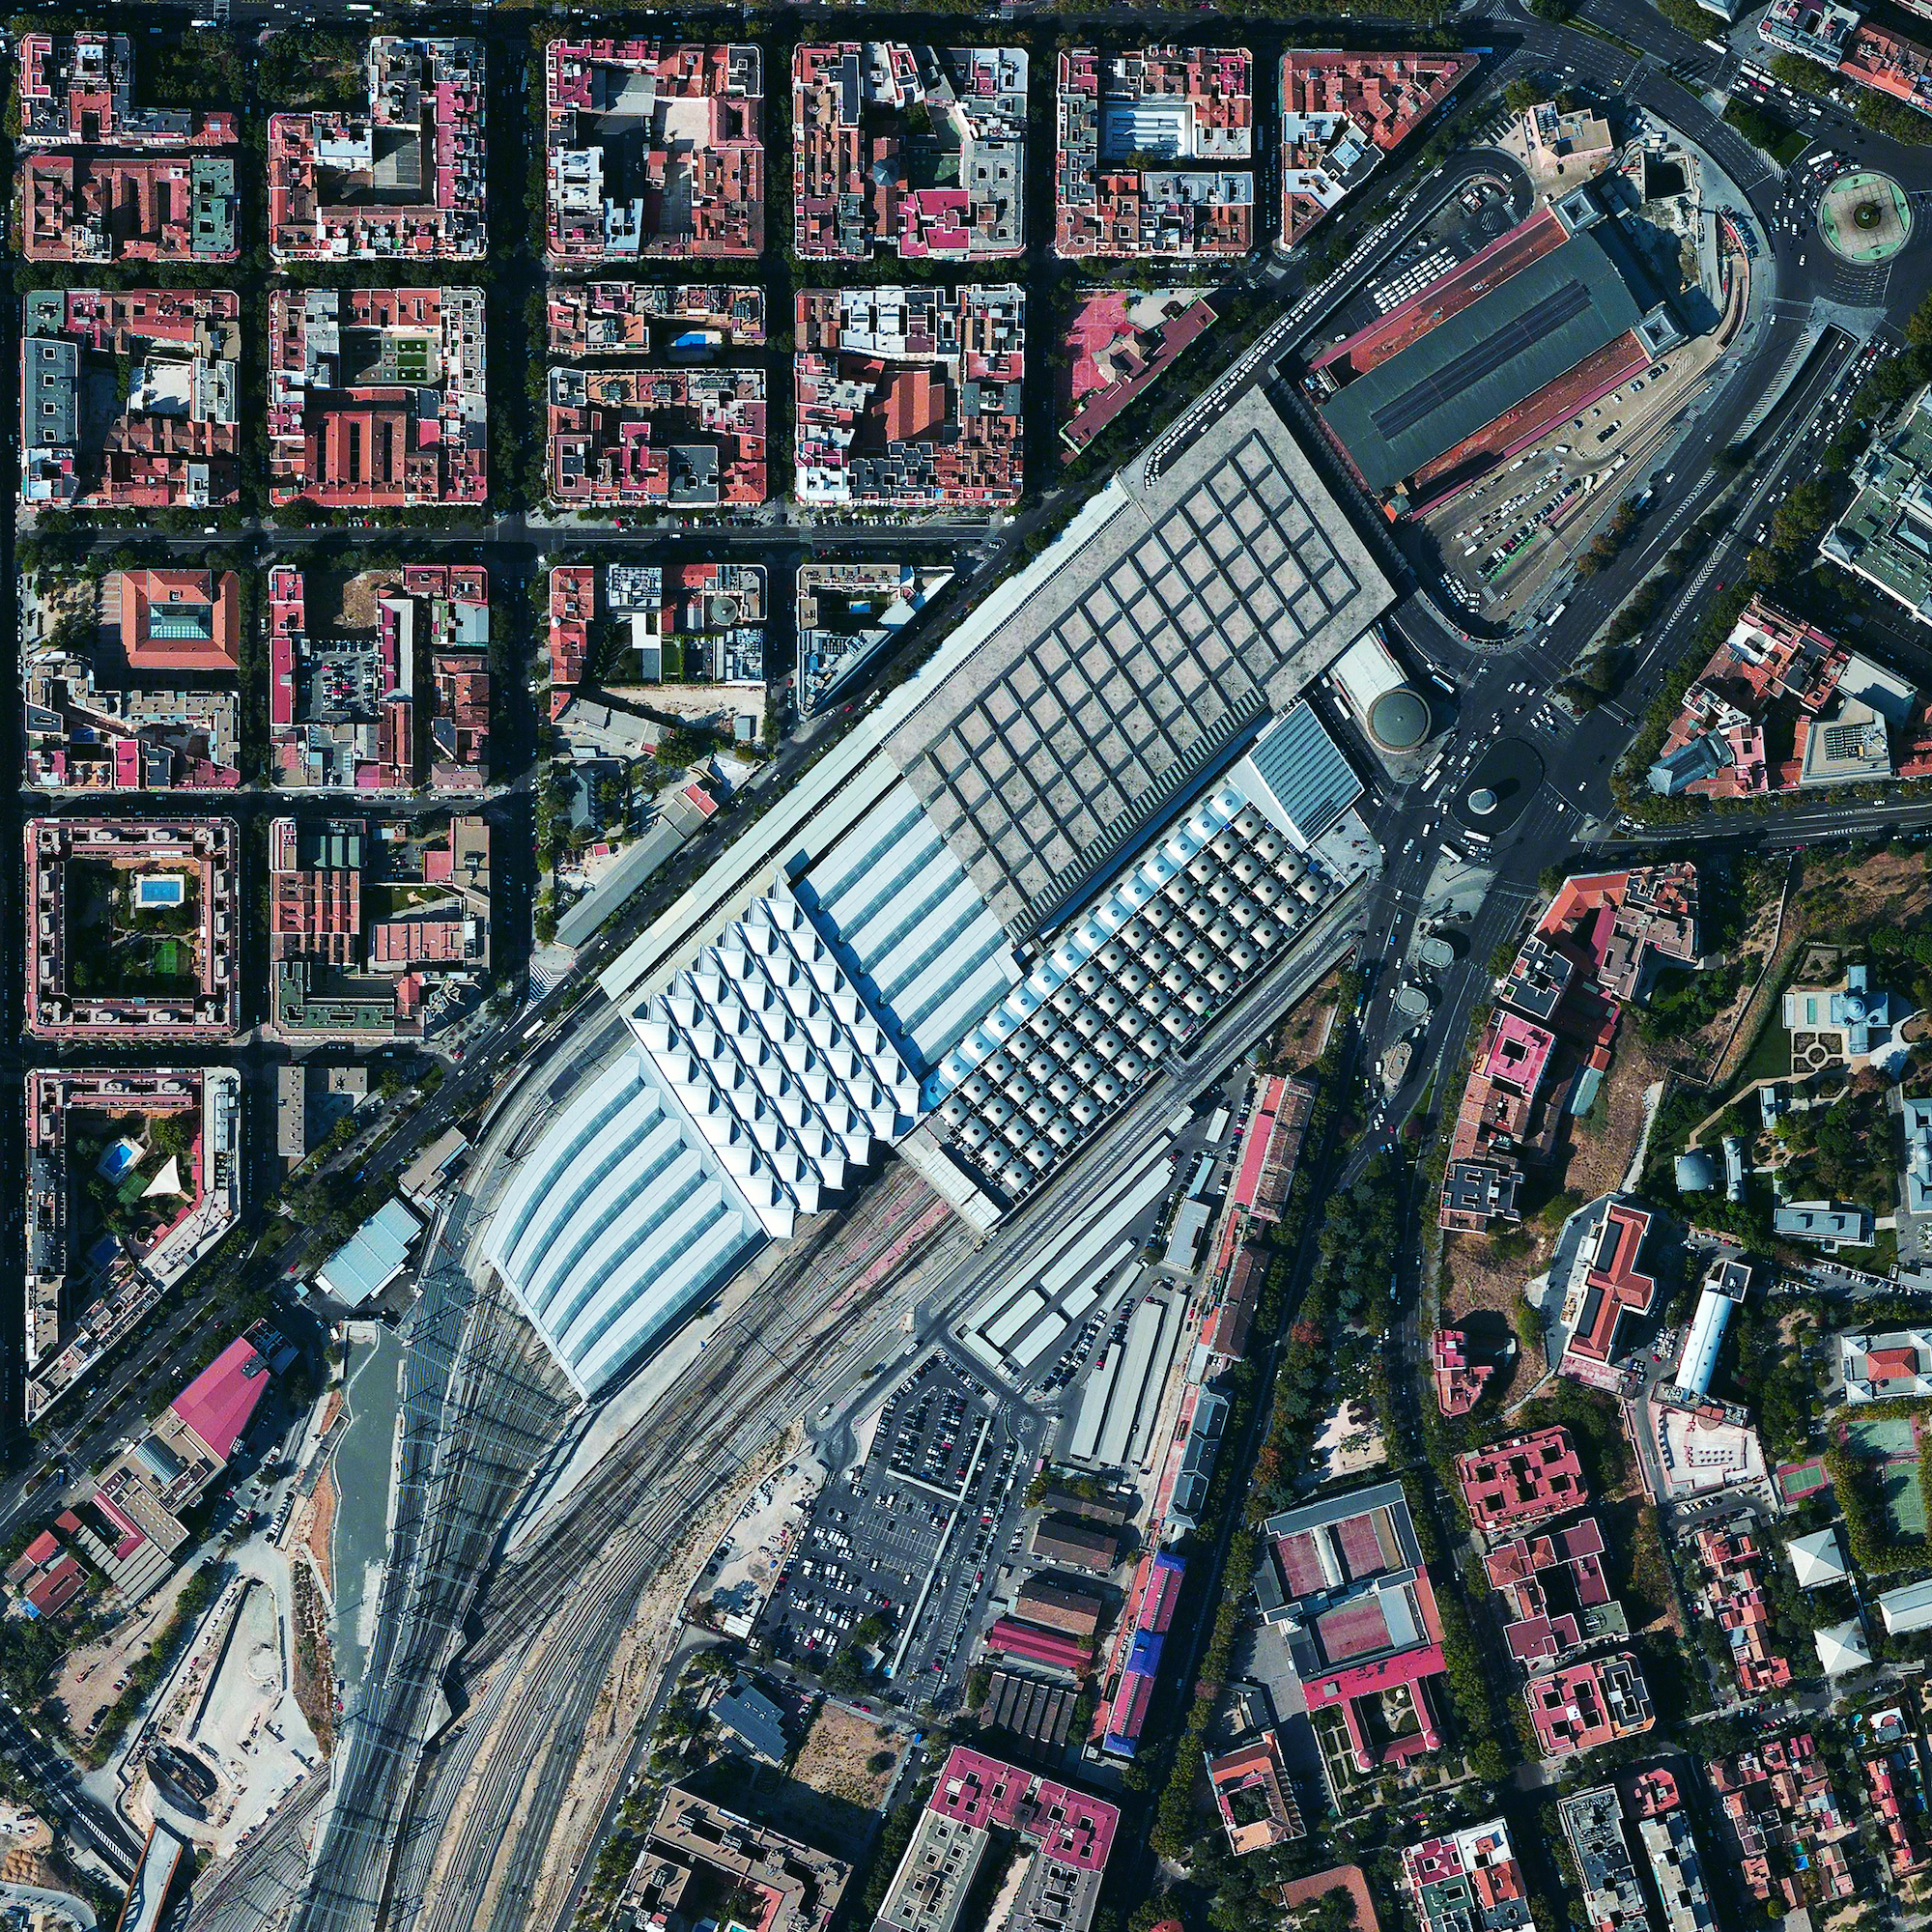 12/16/2015   Madrid Atocha Railway Station   Madrid, Spain  40°24′24″N 3°41′22″W    The Atocha Railway Station is the largest train station in Madrid, Spain. The facility serves as a hub for commuter trains, intercity and regional trains from the south, and AVE high-speed trains. In 1992, the station's original terminal building was converted into a concourse with shops, a nightclub, and a 43,055 square foot tropical botanical garden.